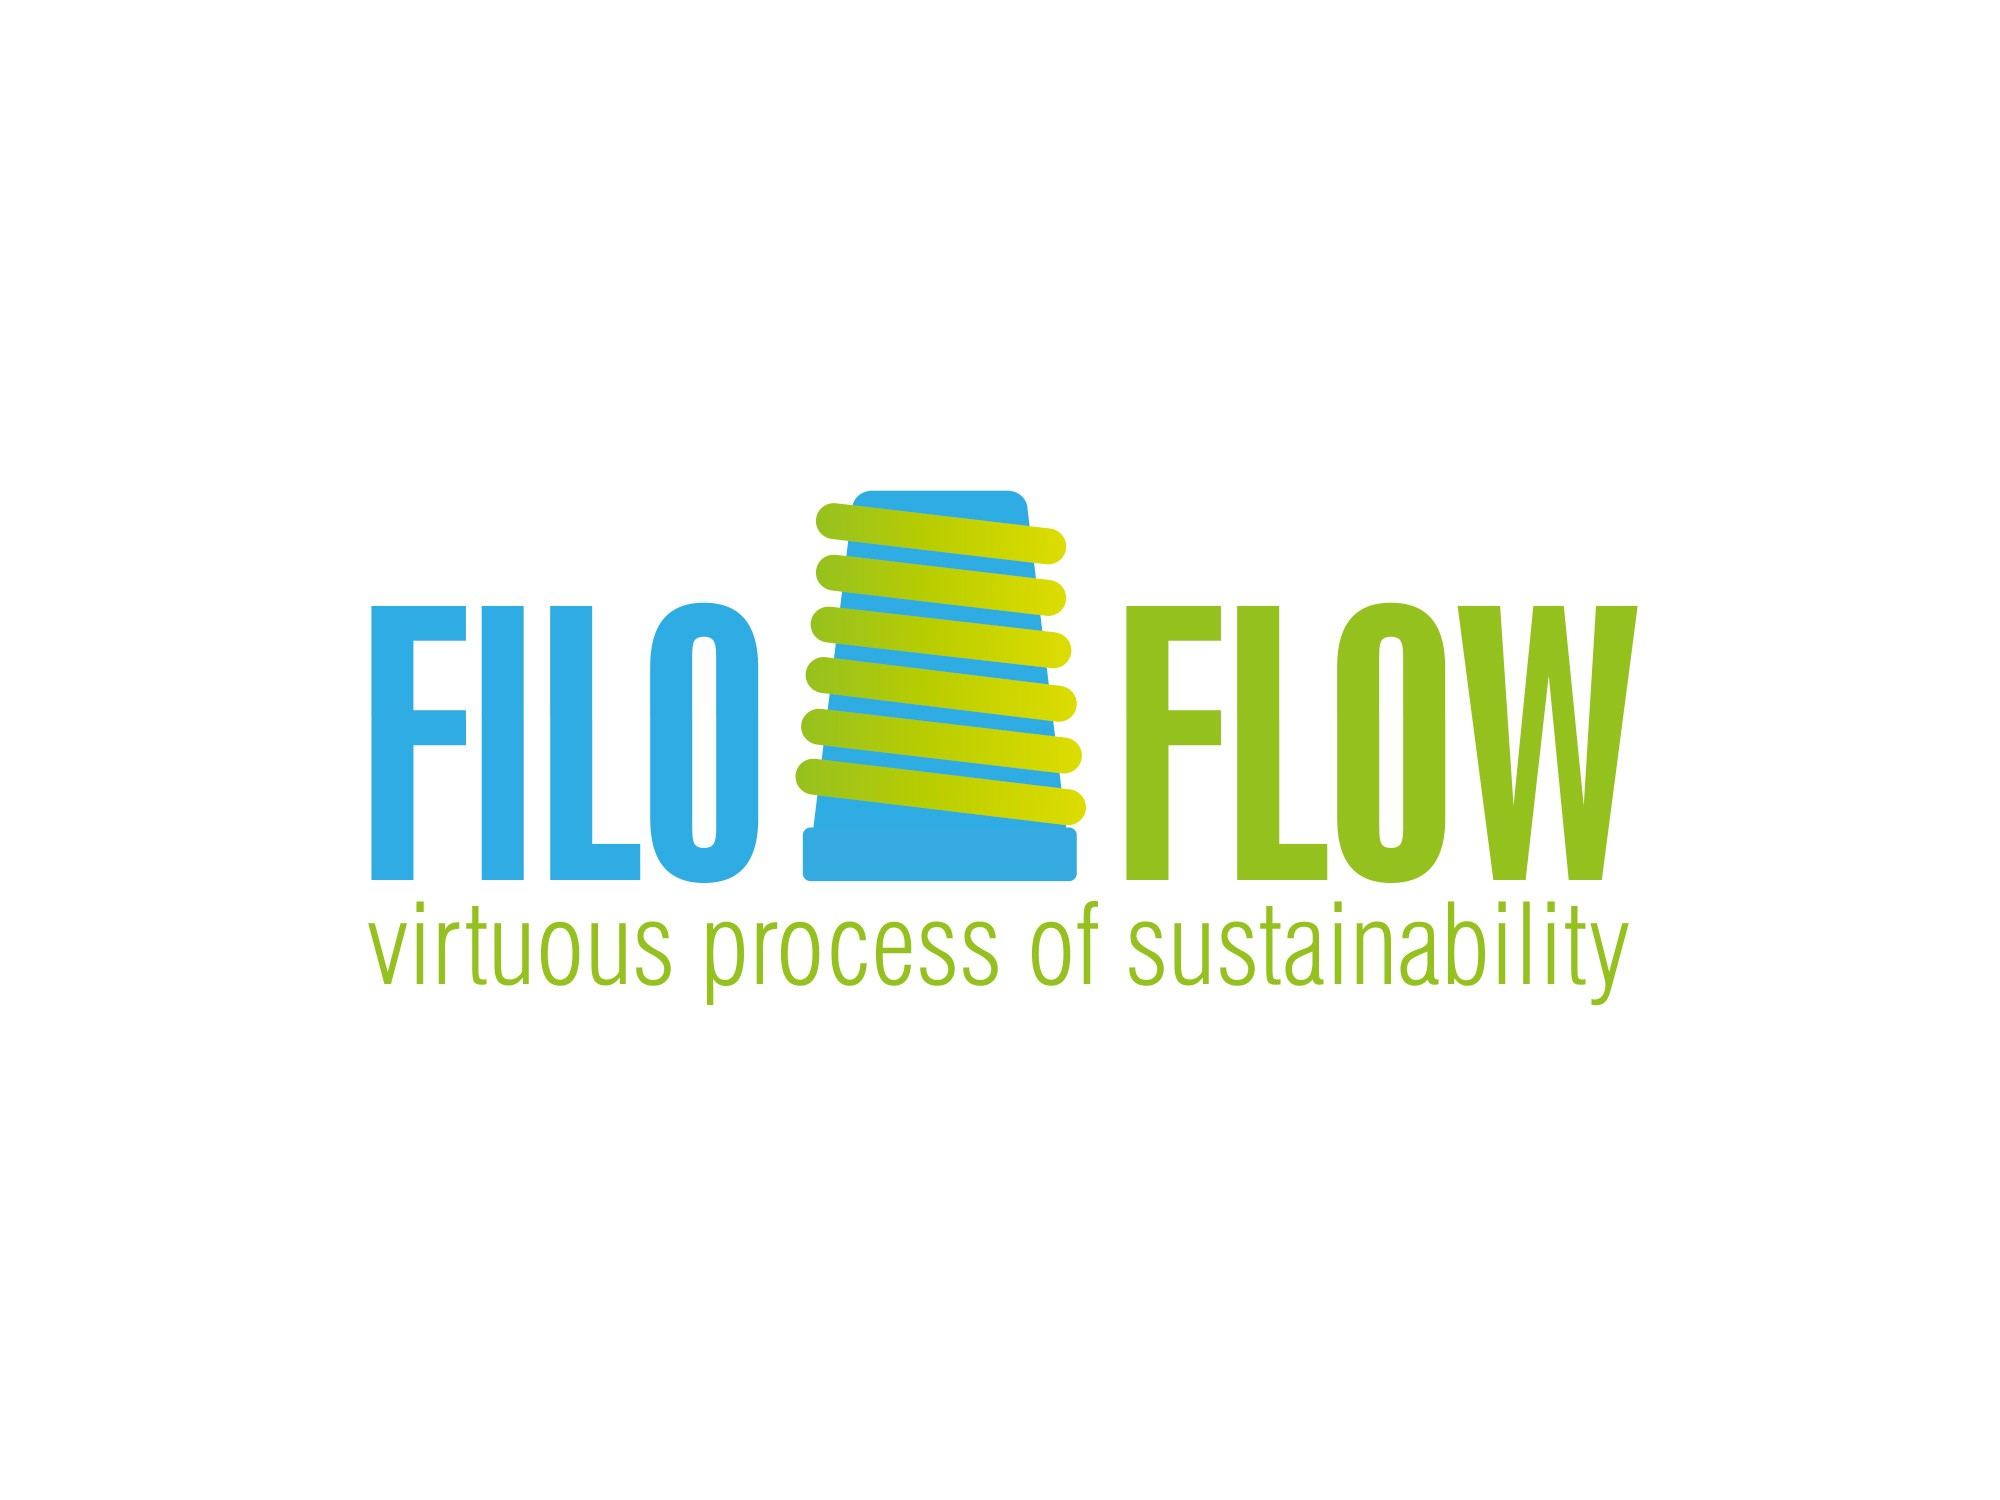 FiloFlow, Sustainability And Traceability According To Filo